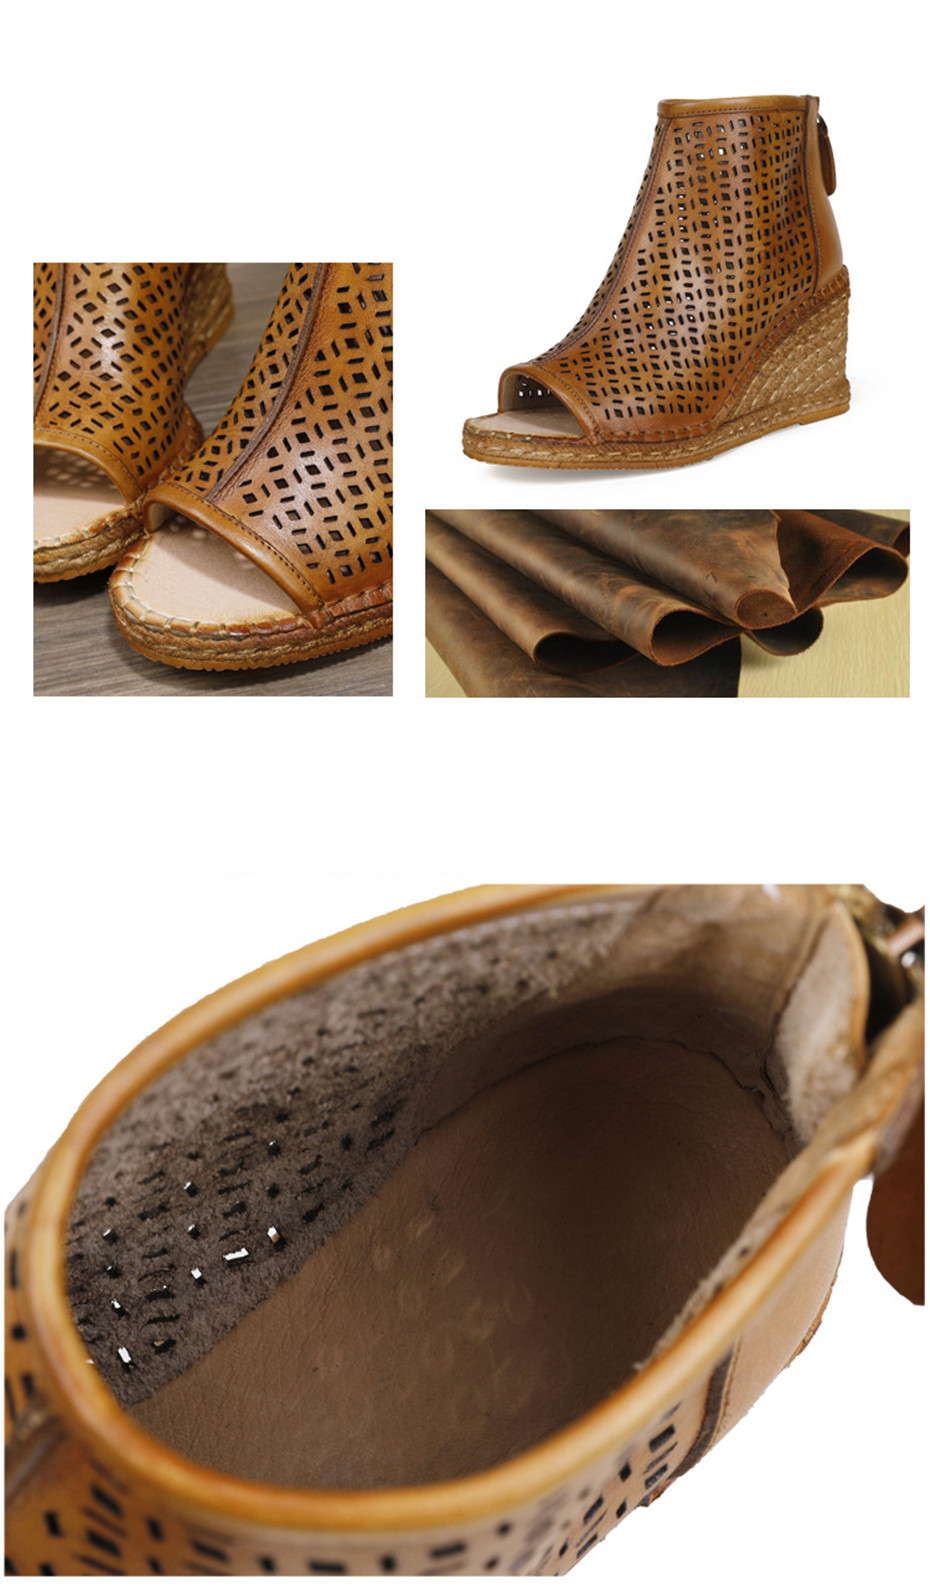 Spring Summer 2020 New Women Wedges Sandals Genuine Leather Peep Toe Hollow Woven High Wedge Heels Shoes Woman High-Top Sandals (10)